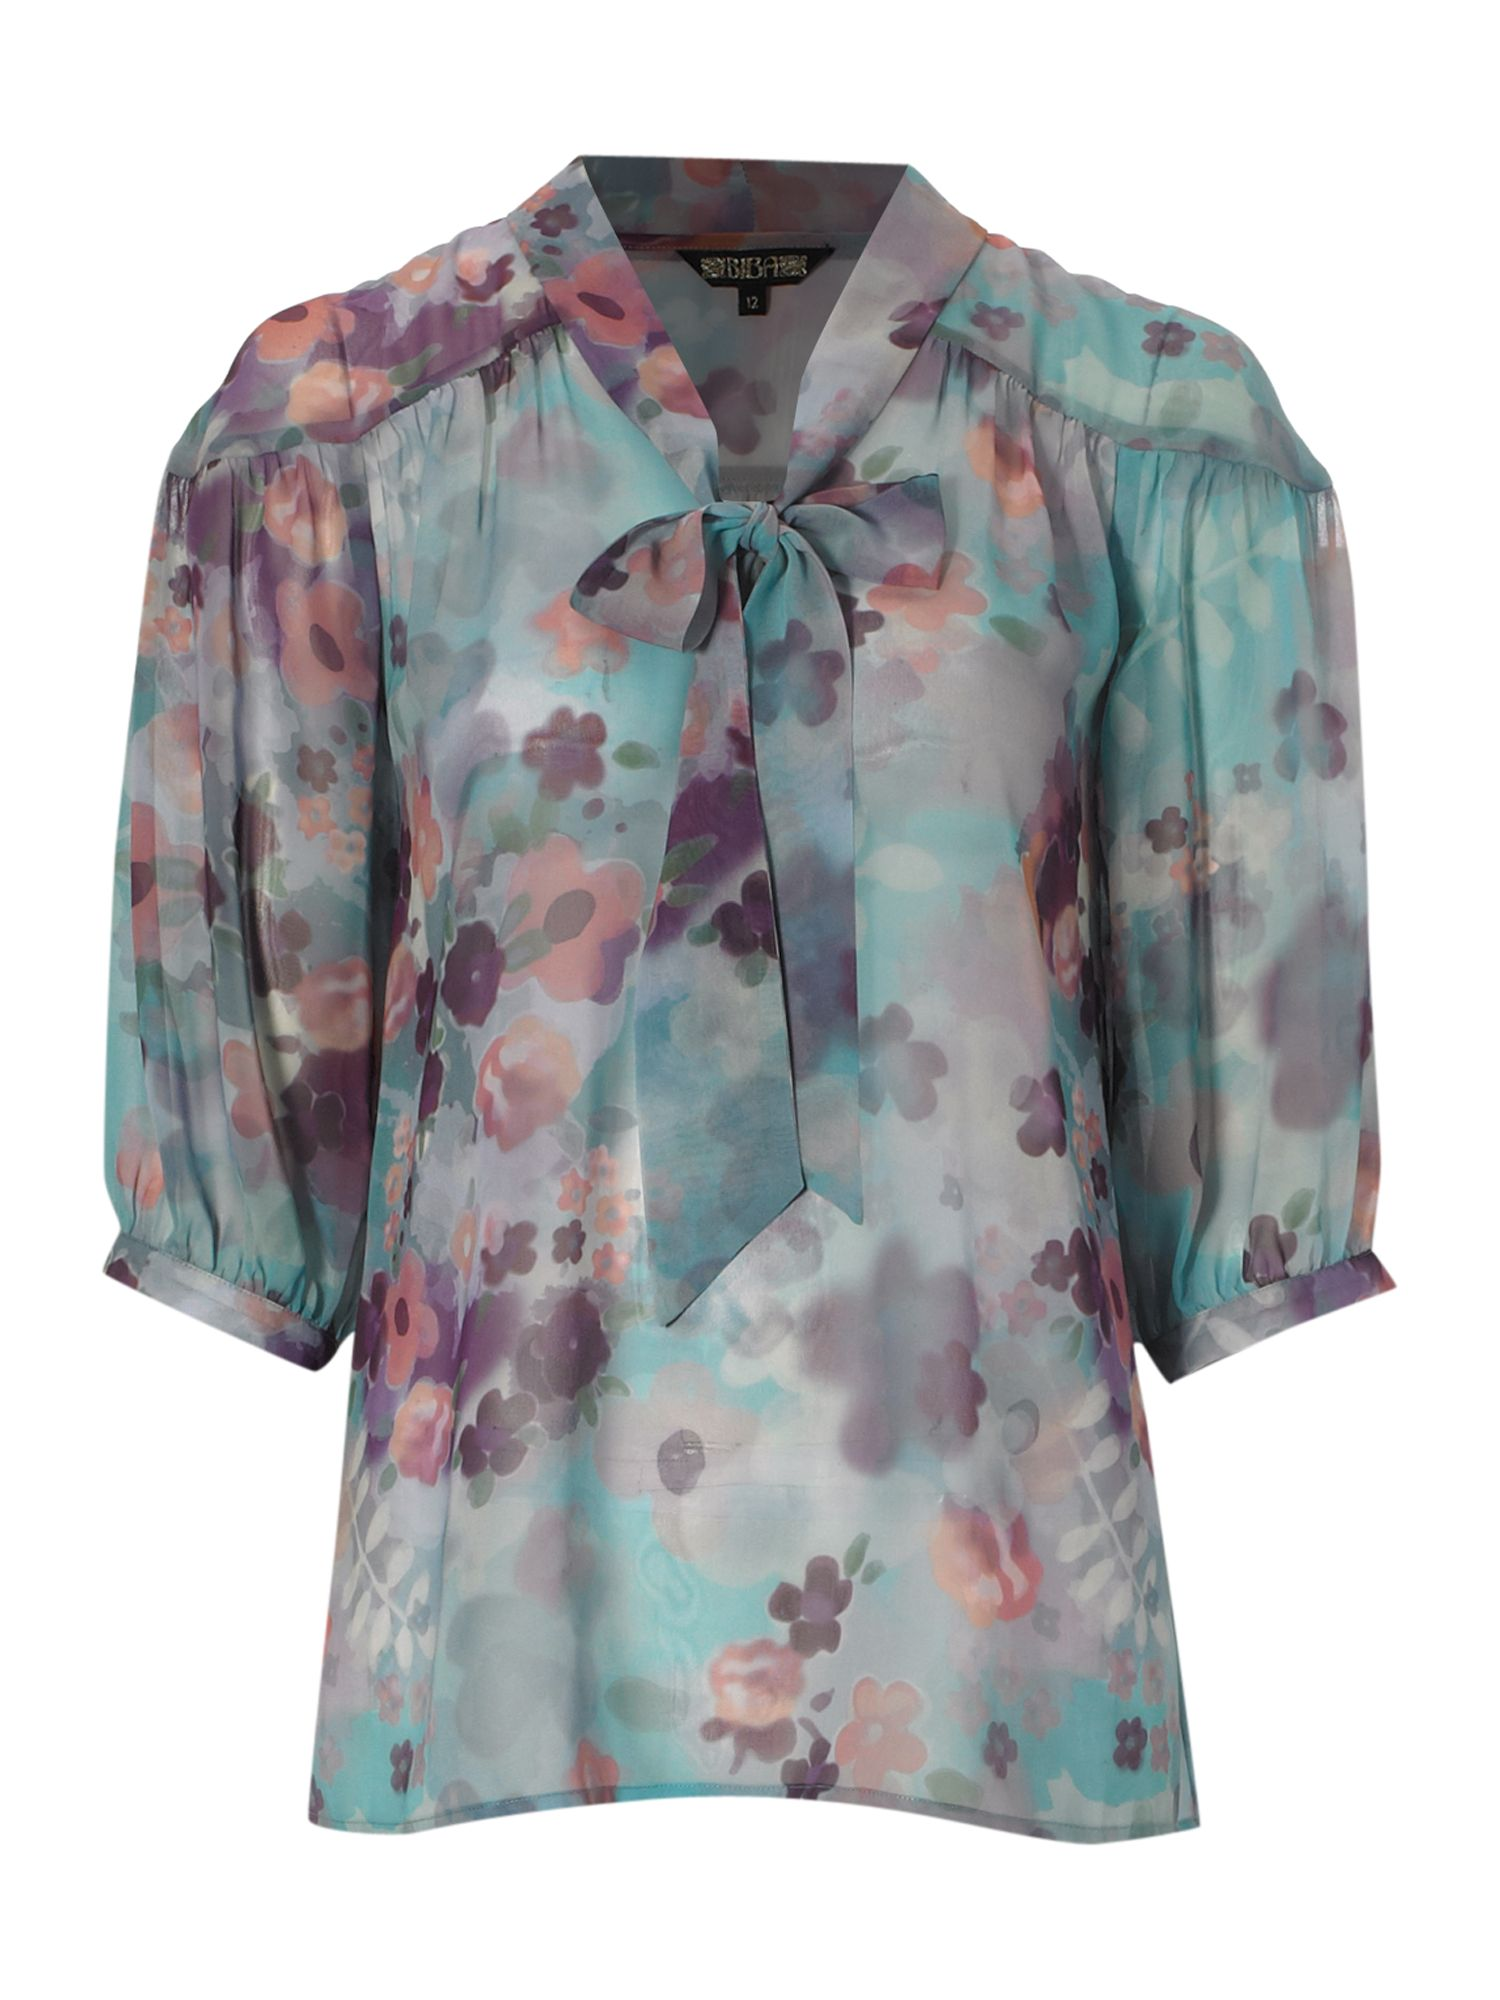 Pussy bow print blouse - Multi-Coloured 12,14,10